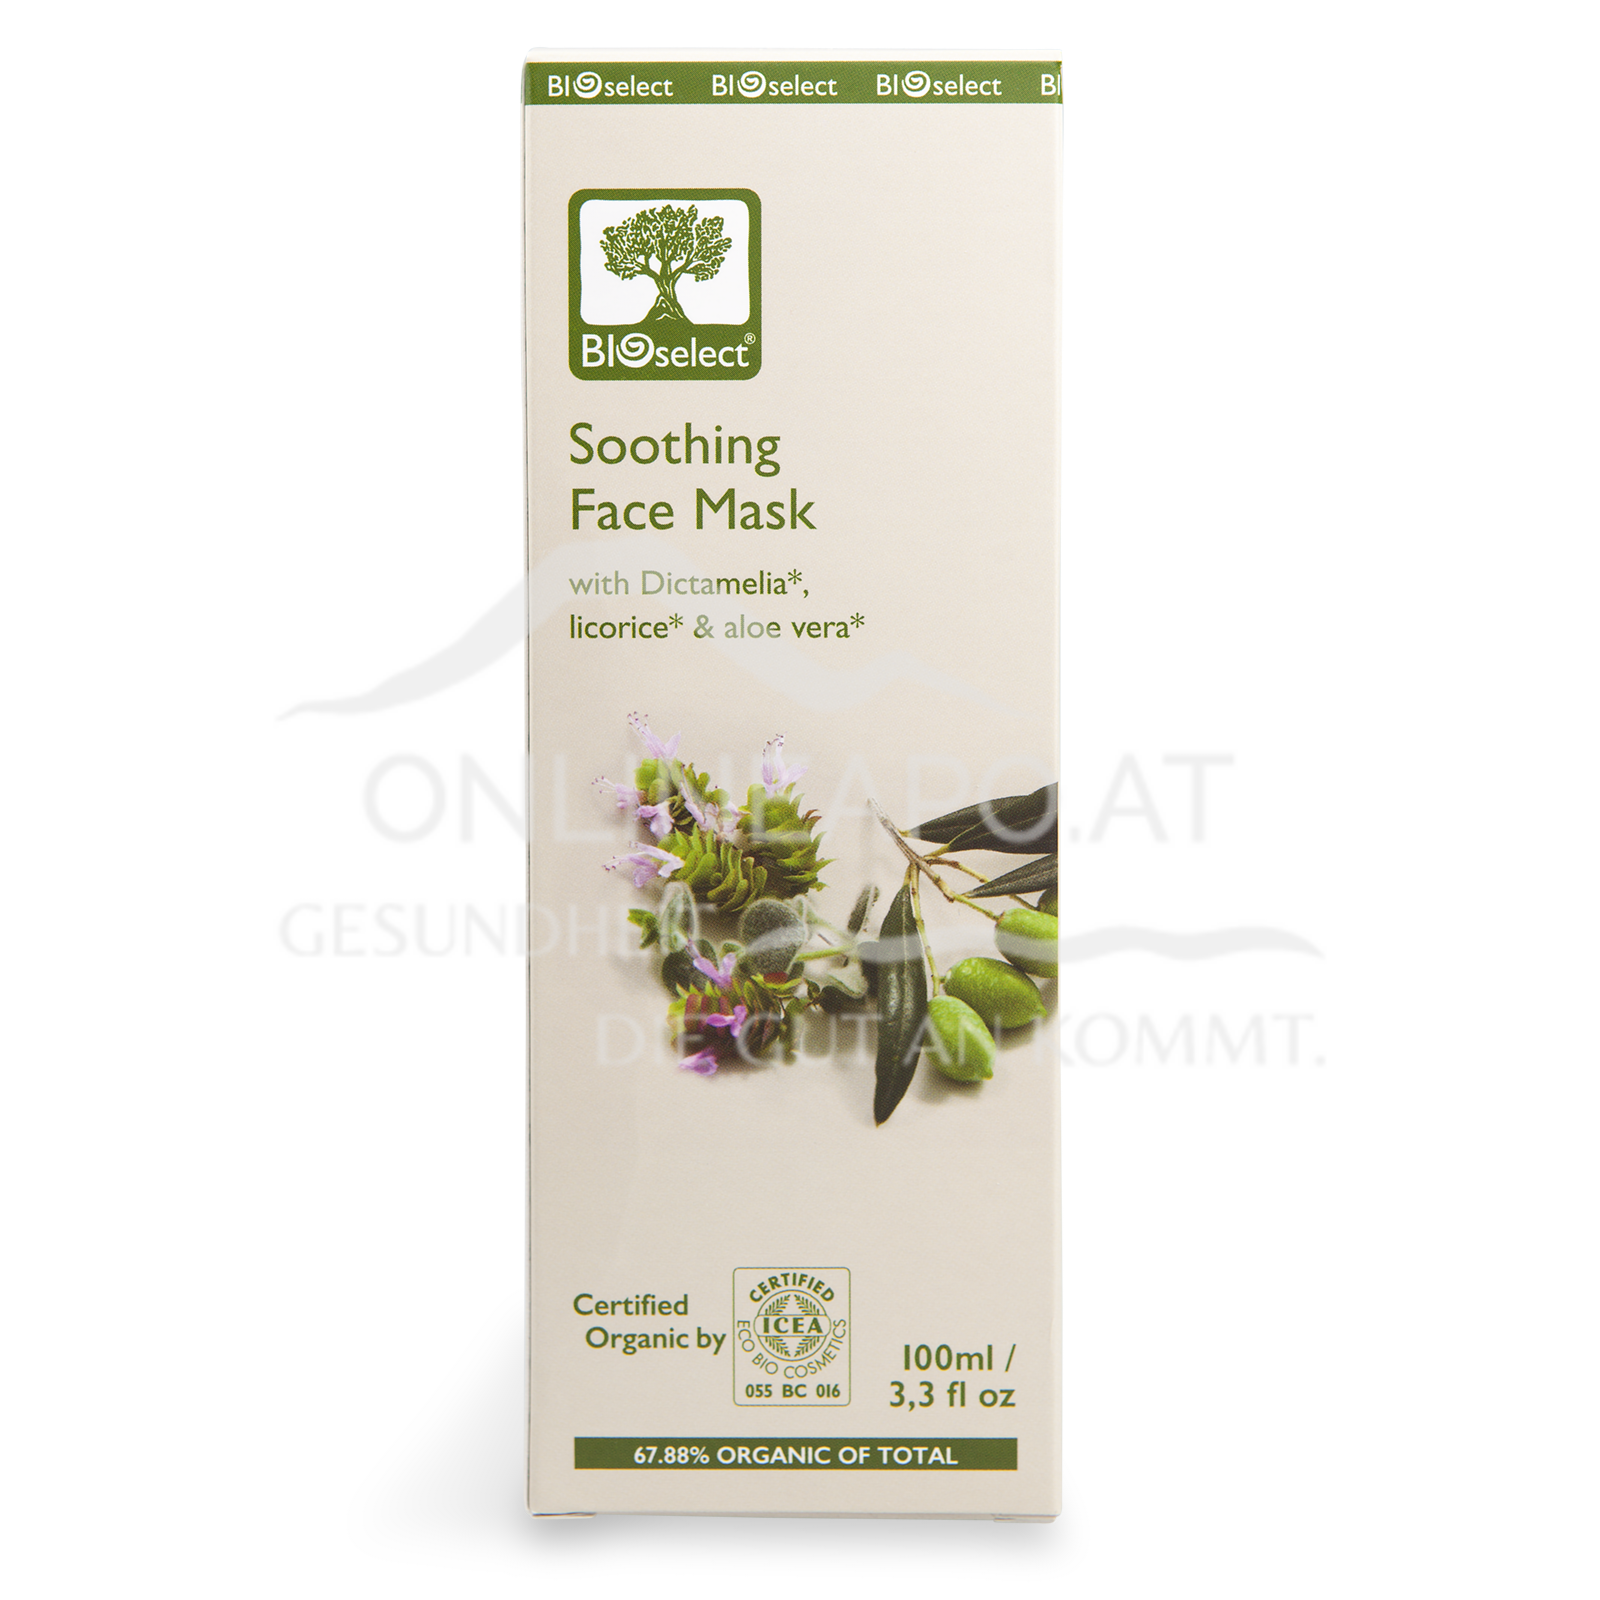 Bioselect Soothing Face Mask